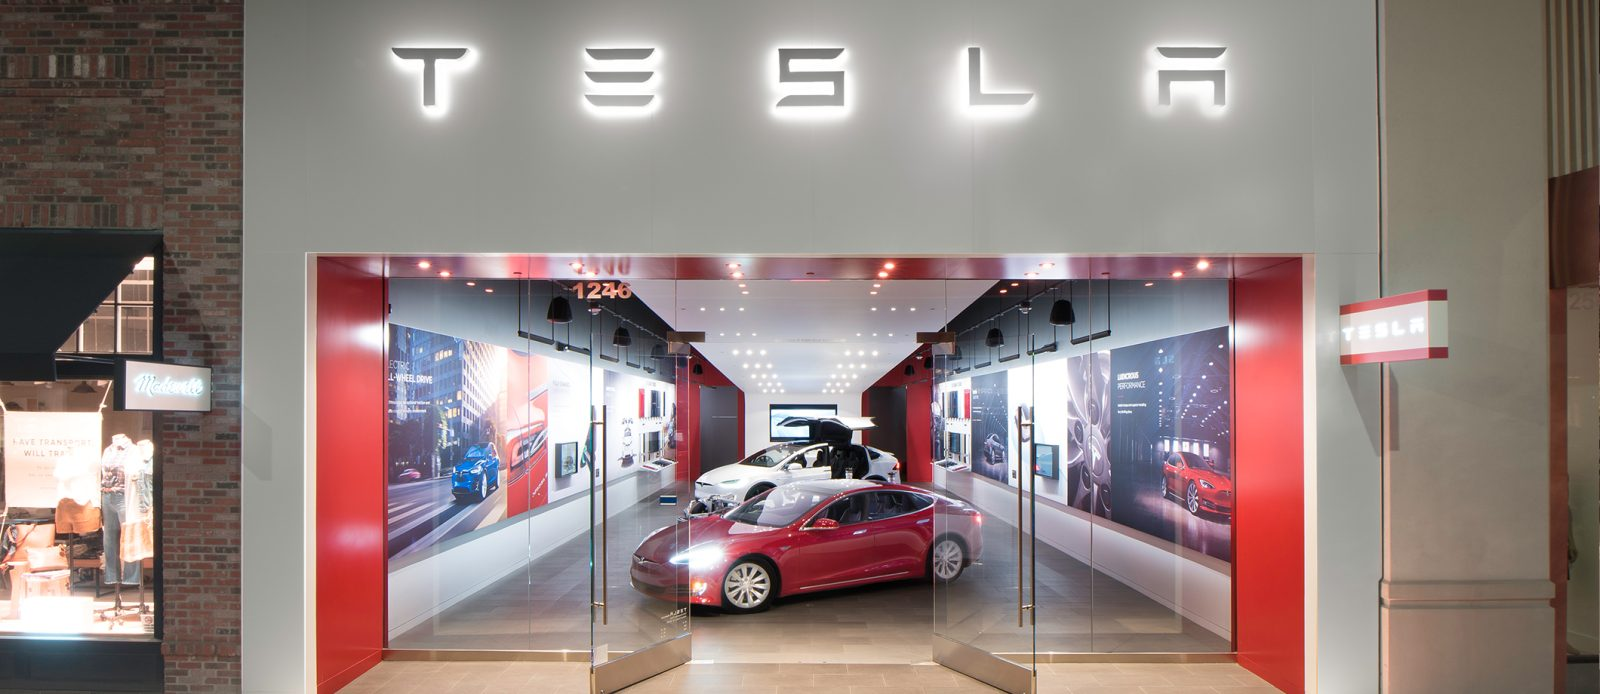 tesla finishes dead last in auto dealership ranking stores found to